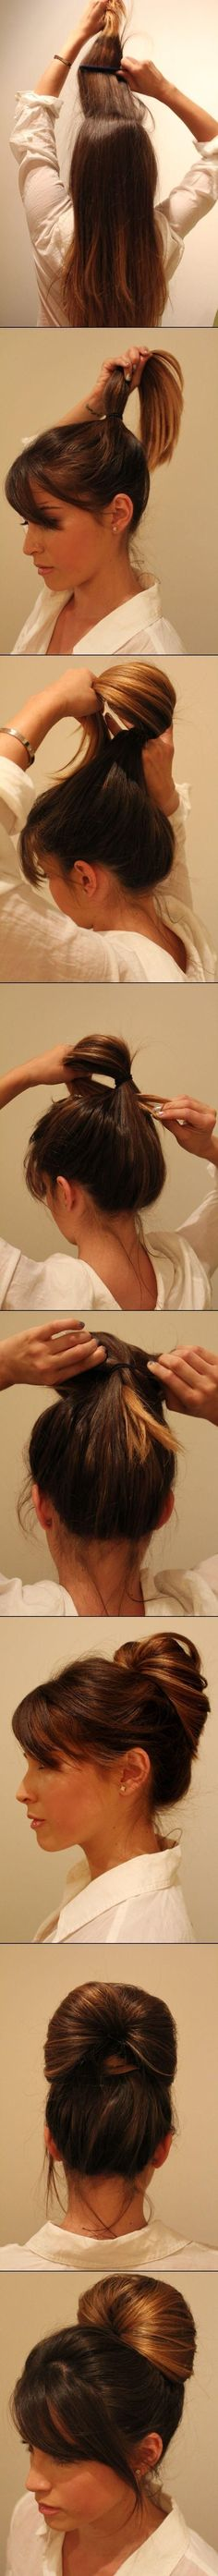 So much cuter than a ponytail. Love this!